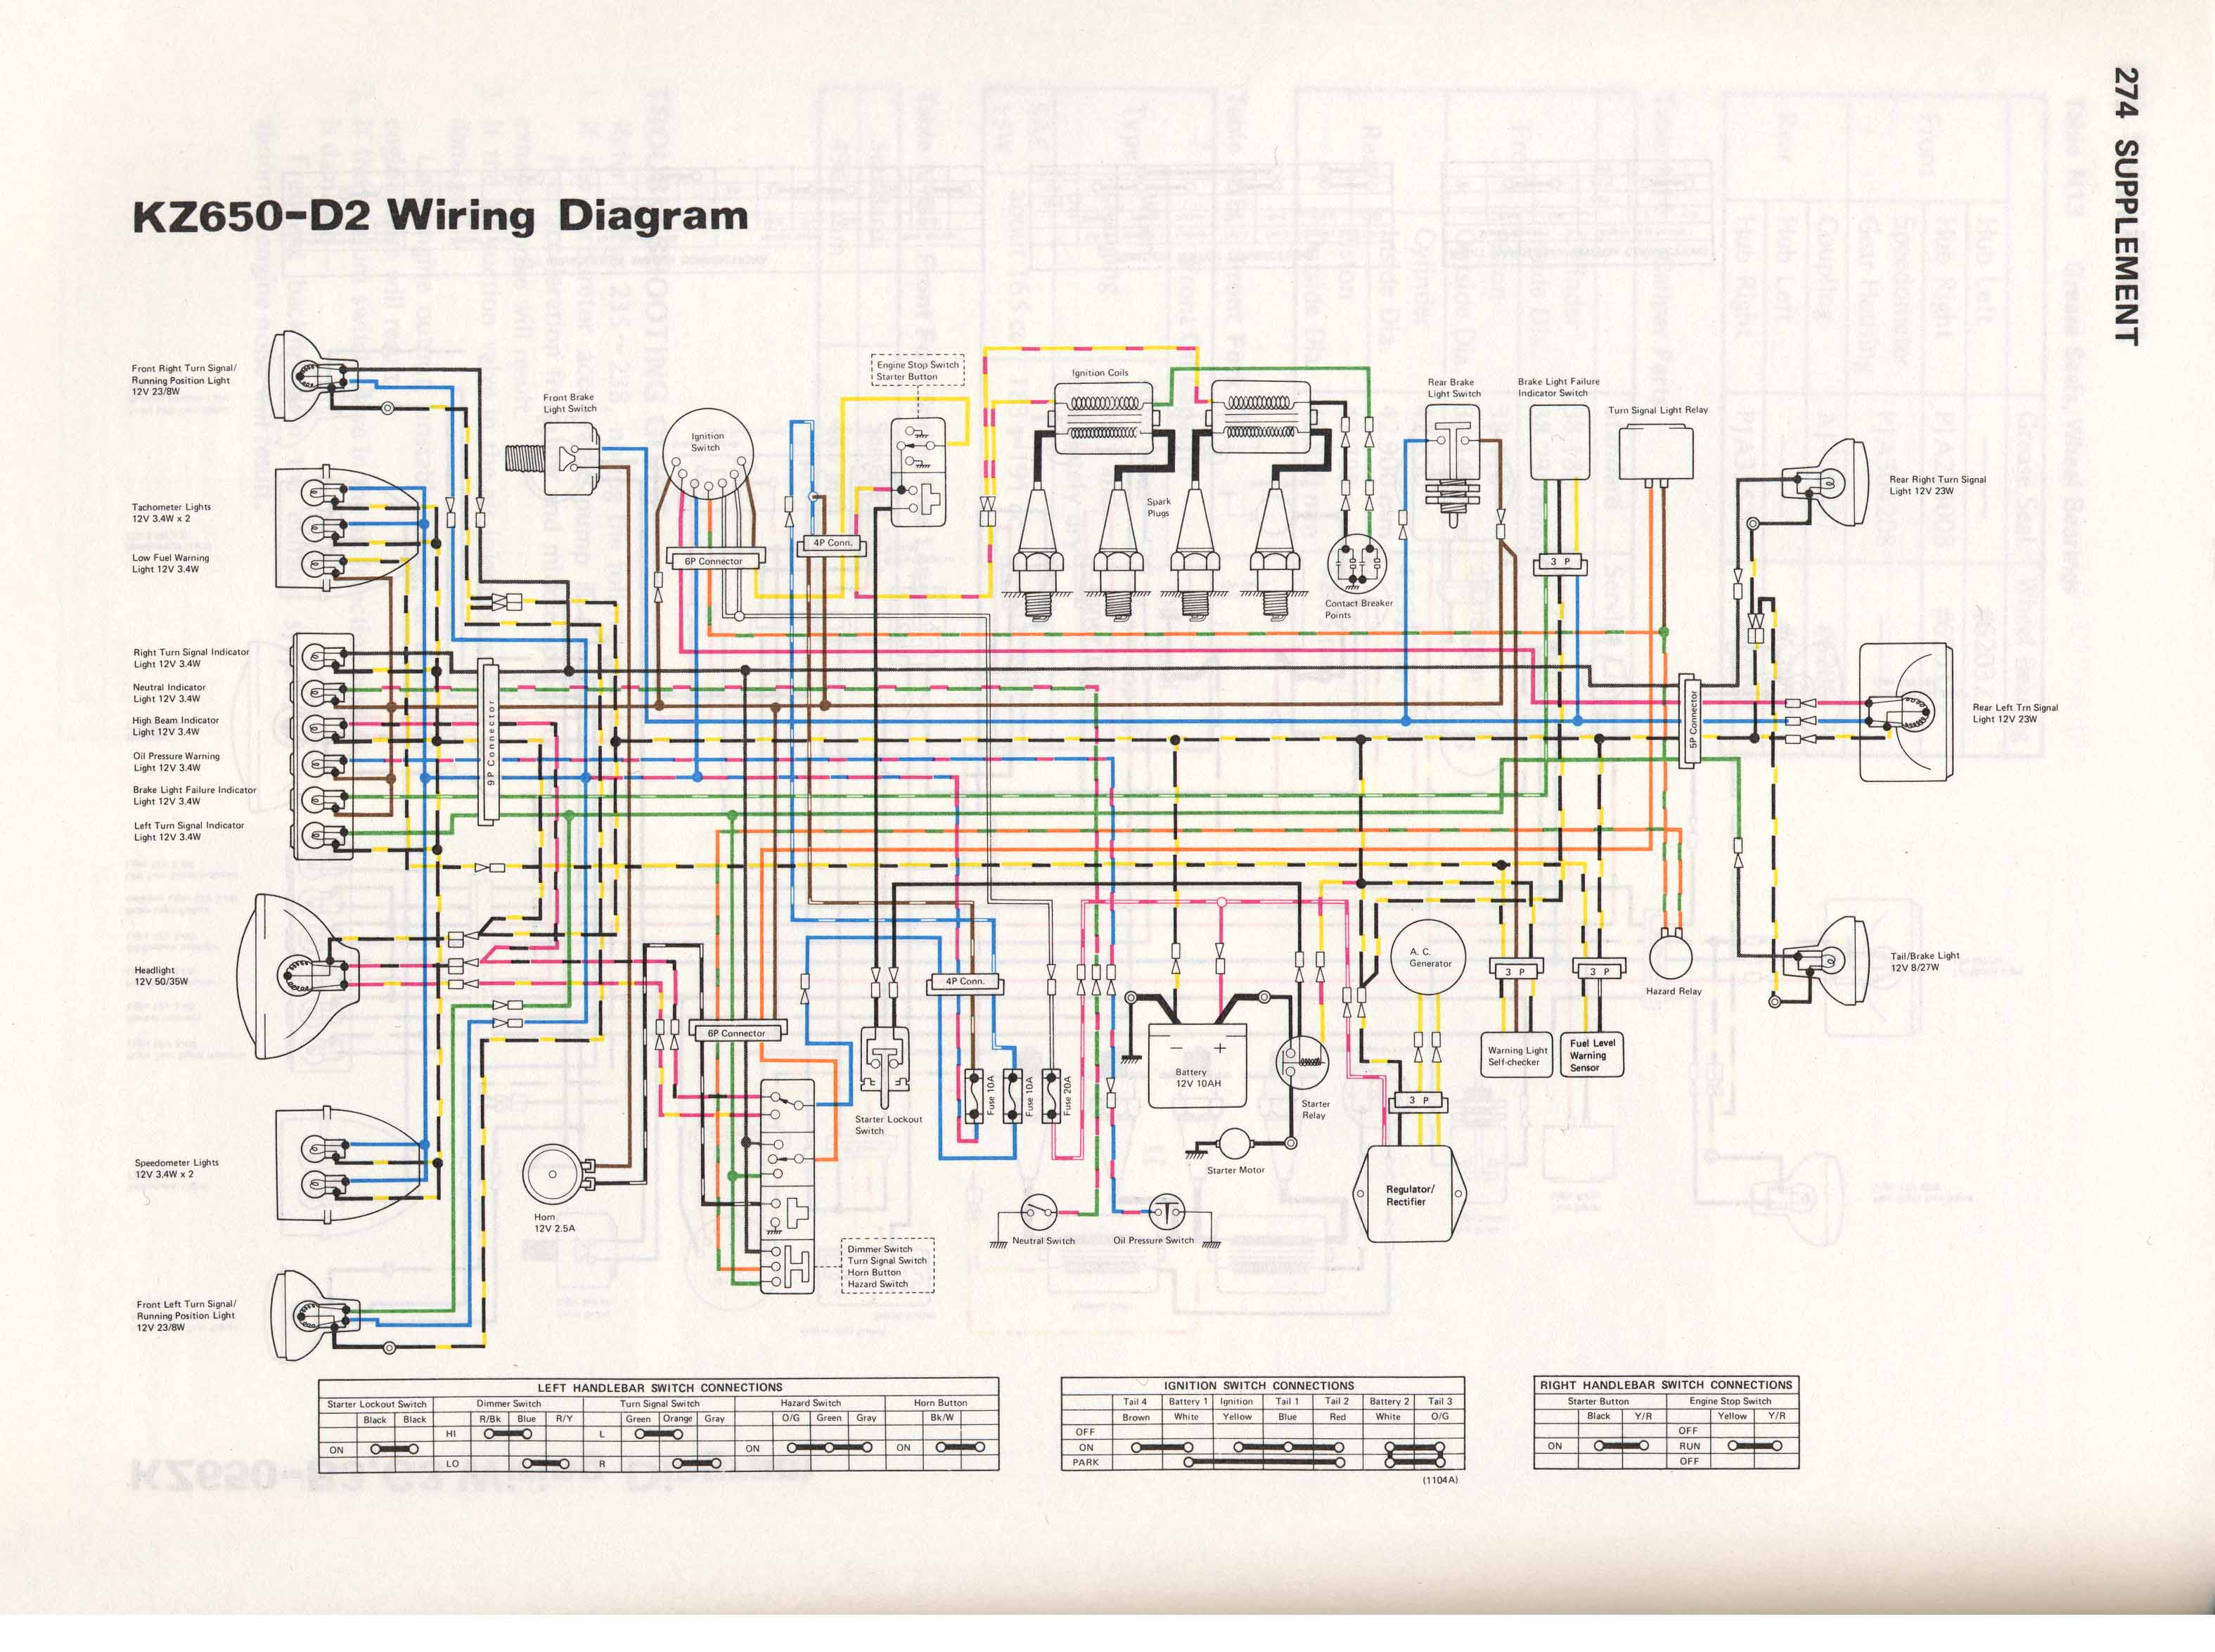 39DE8 1980 Kawasaki Kz1000 Wiring Diagrams | Digital Resources on xv920 wiring diagram, er6n wiring diagram, kz400 wiring diagram, fj1100 wiring diagram, vulcan 750 wiring diagram, z1000 wiring diagram, kawasaki wiring diagram, kz1000 wiring diagram, kz900 wiring diagram, kz650 wiring diagram, ke175 wiring diagram, zx600 wiring diagram, gs1000 wiring diagram, vulcan 1500 wiring diagram, zl1000 wiring diagram, ninja 250r wiring diagram, xj550 wiring diagram, kz200 wiring diagram, ex250 wiring diagram, xs850 wiring diagram,